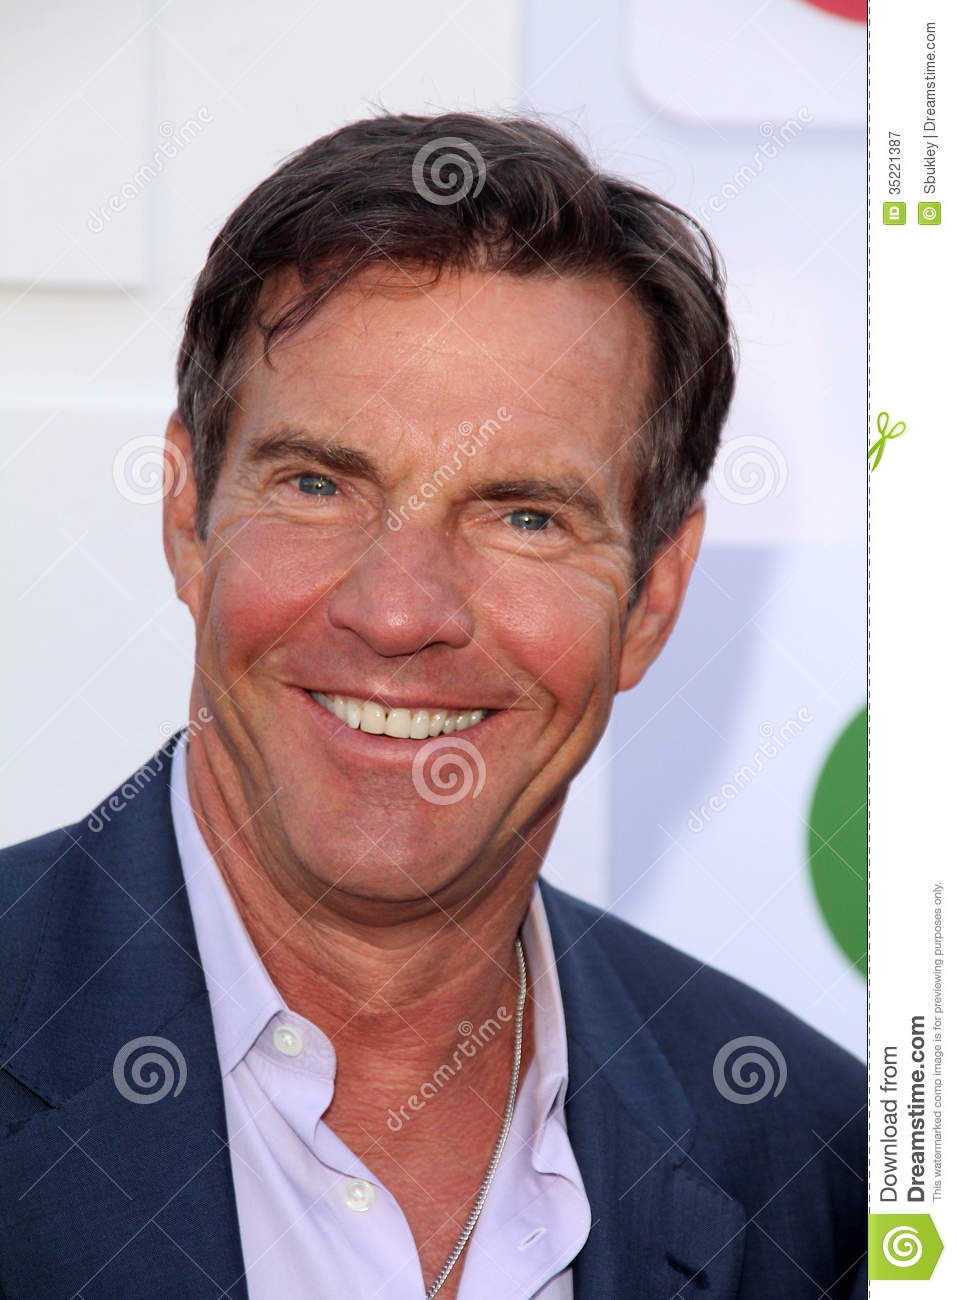 dennis quaid biodennis quaid young, dennis quaid harrison ford, dennis quaid and meg ryan, dennis quaid 2017, dennis quaid films, dennis quaid wiki, dennis quaid jerry lee lewis, dennis quaid coffee shop ellen, dennis quaid actor, dennis quaid age, dennis quaid randy, dennis quaid tv tropes, dennis quaid car, dennis quaid scarlett johansson movie, dennis quaid bio, dennis quaid movies list, dennis quaid hund, dennis quaid and andie macdowell, dennis quaid instagram, dennis quaid wikipedia francais